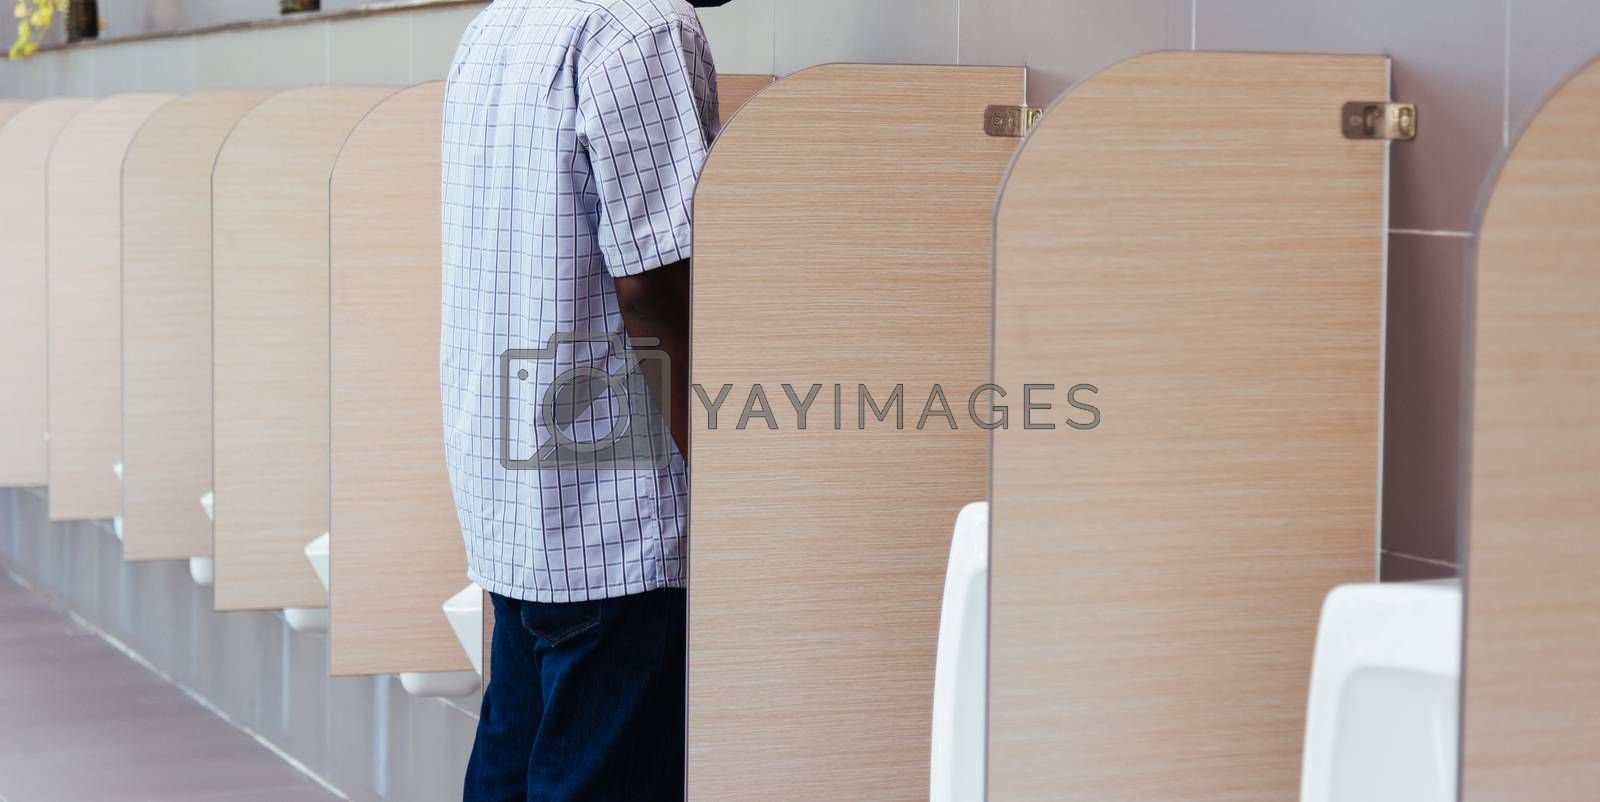 The man peeing in male toilet urinals bowl in restroom, wc